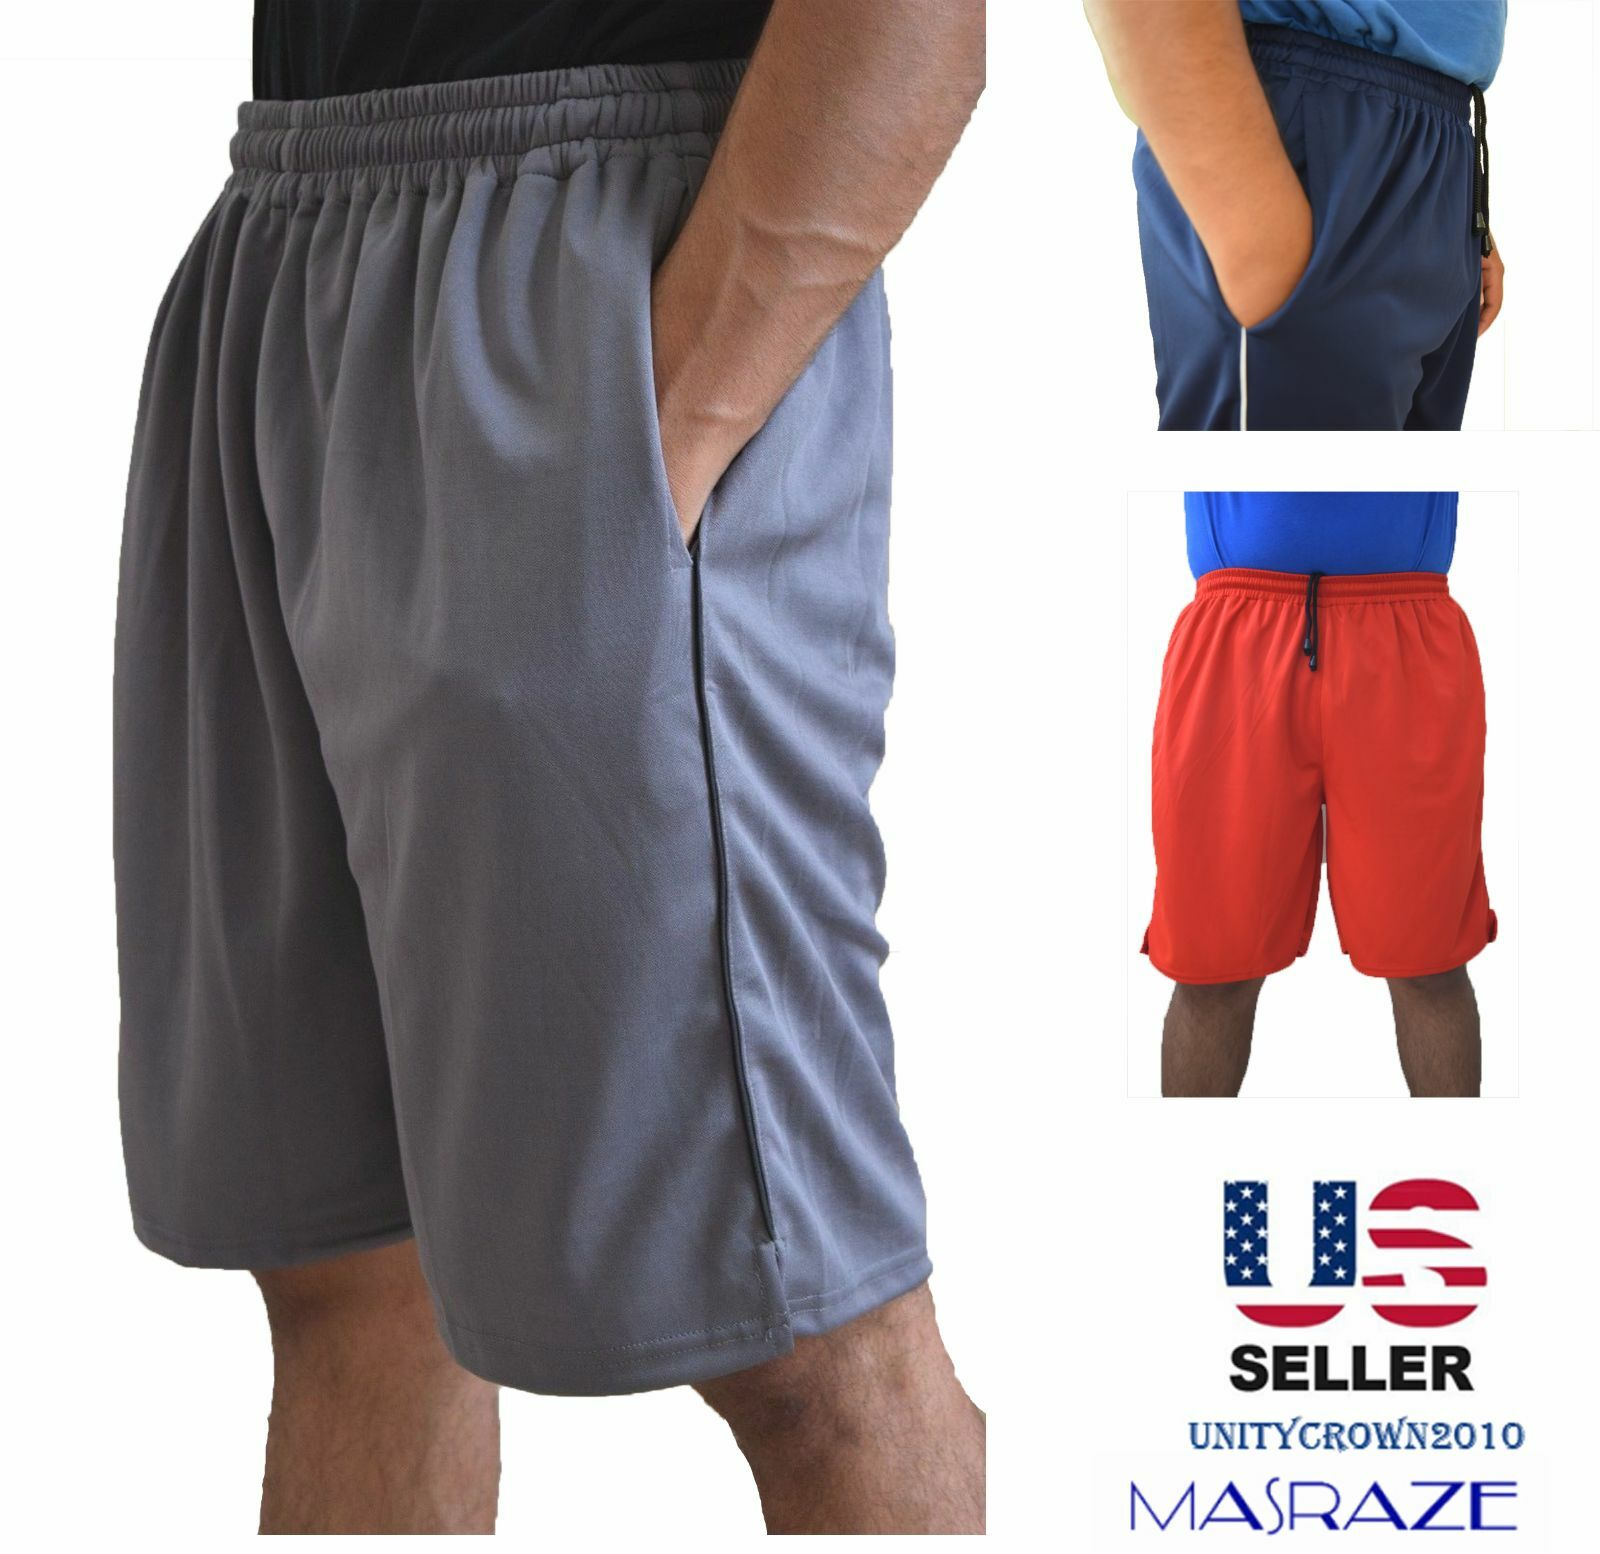 Mens Basketball Gym Fitness Workout Athletic Shorts with 2 P